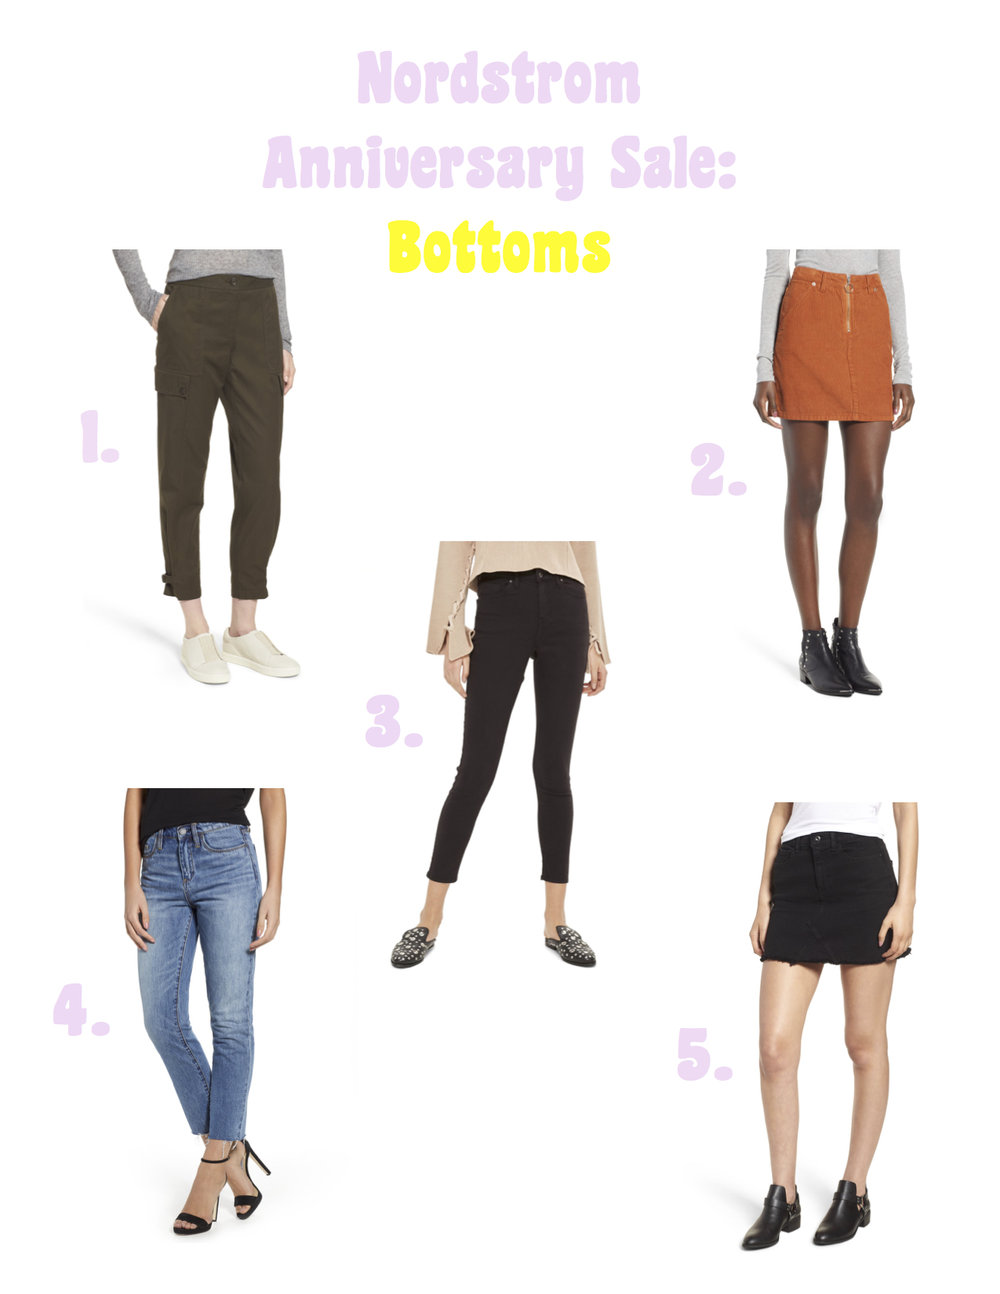 nordstrom anniversary sale- bottoms.jpg